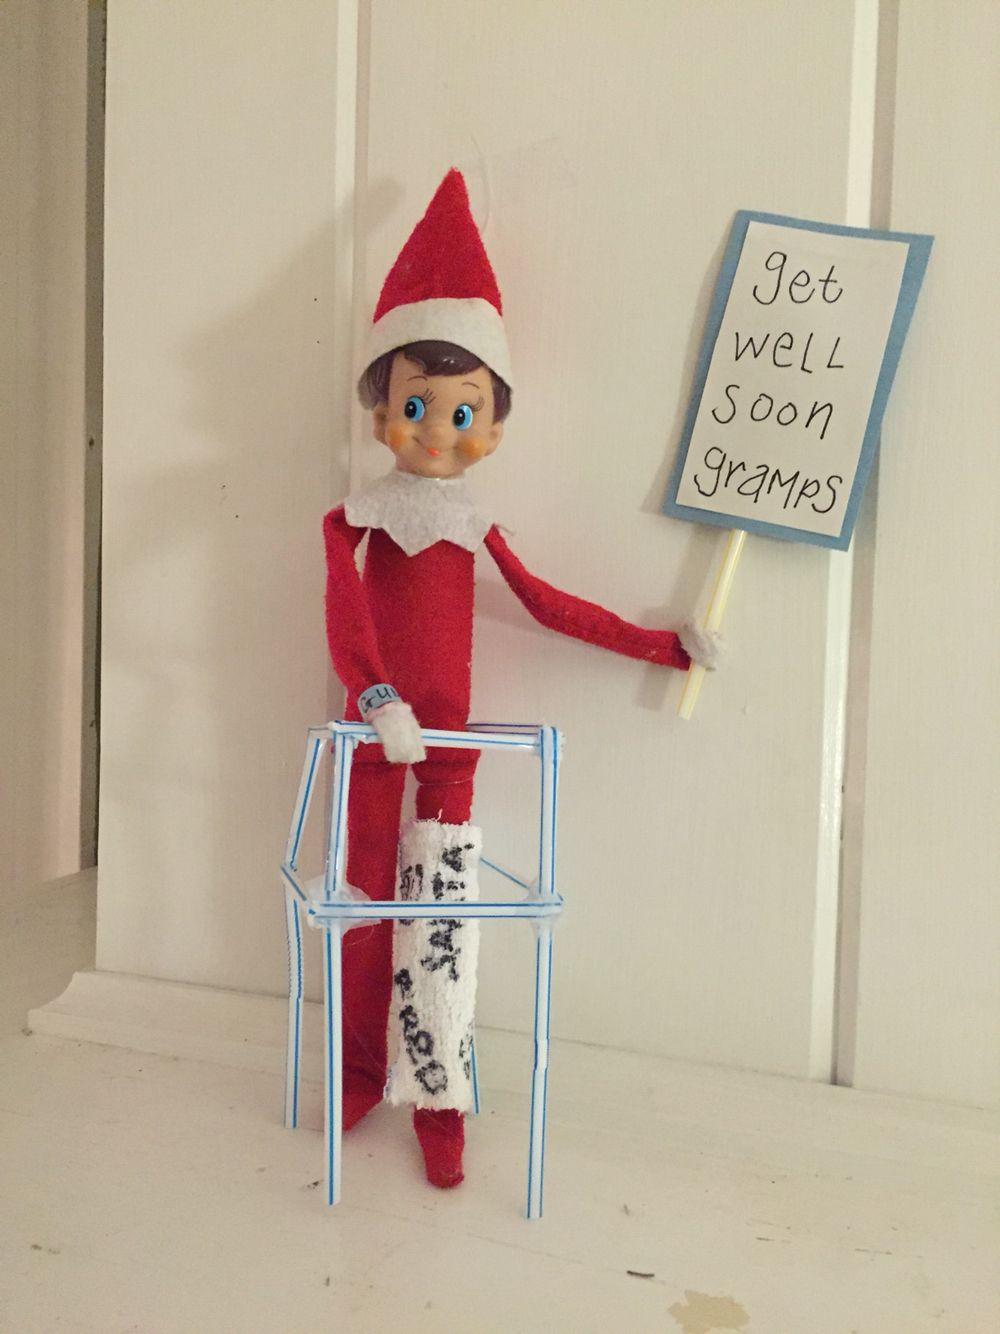 Elf in a cast with strict rules from Santa not to move for two weeks ...